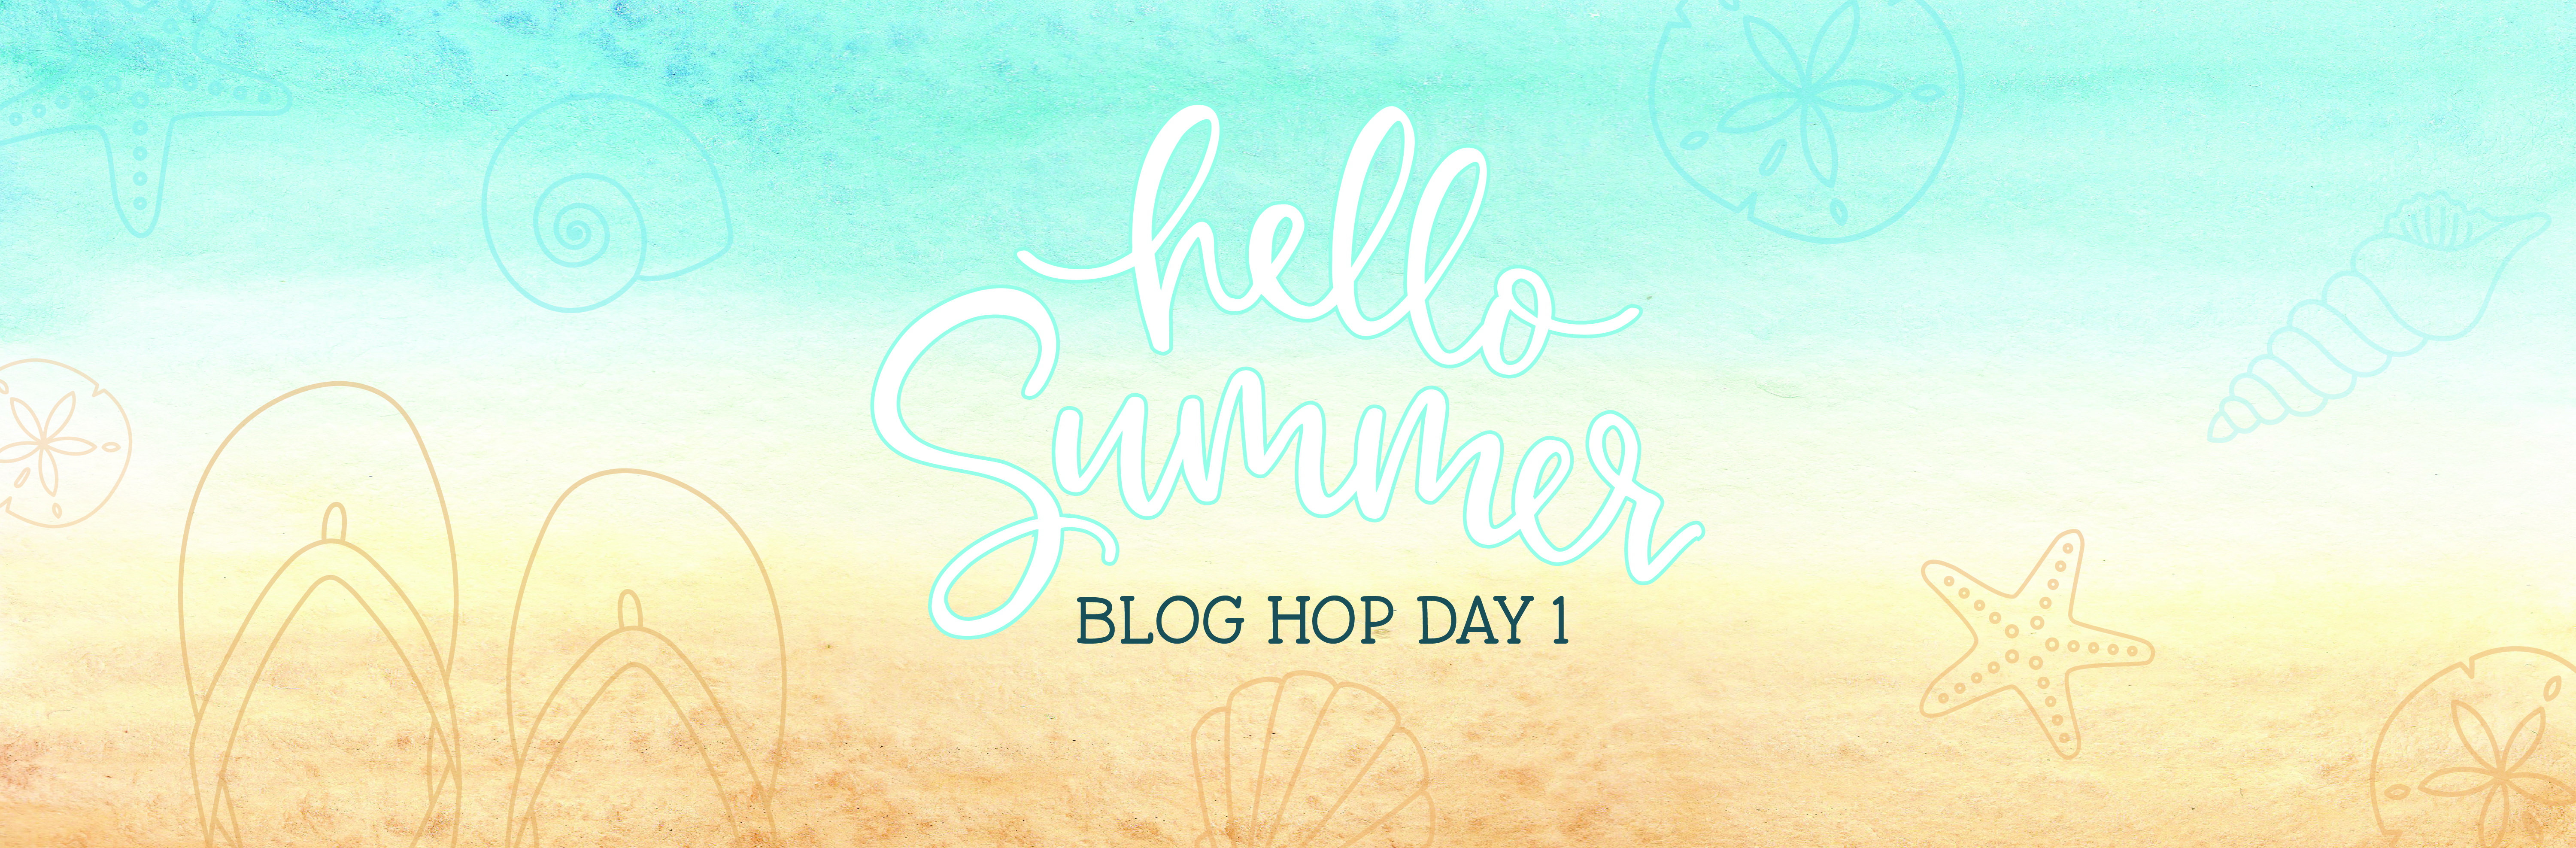 Copy of Hello Summer Blog Hop Day 1 Banner-01